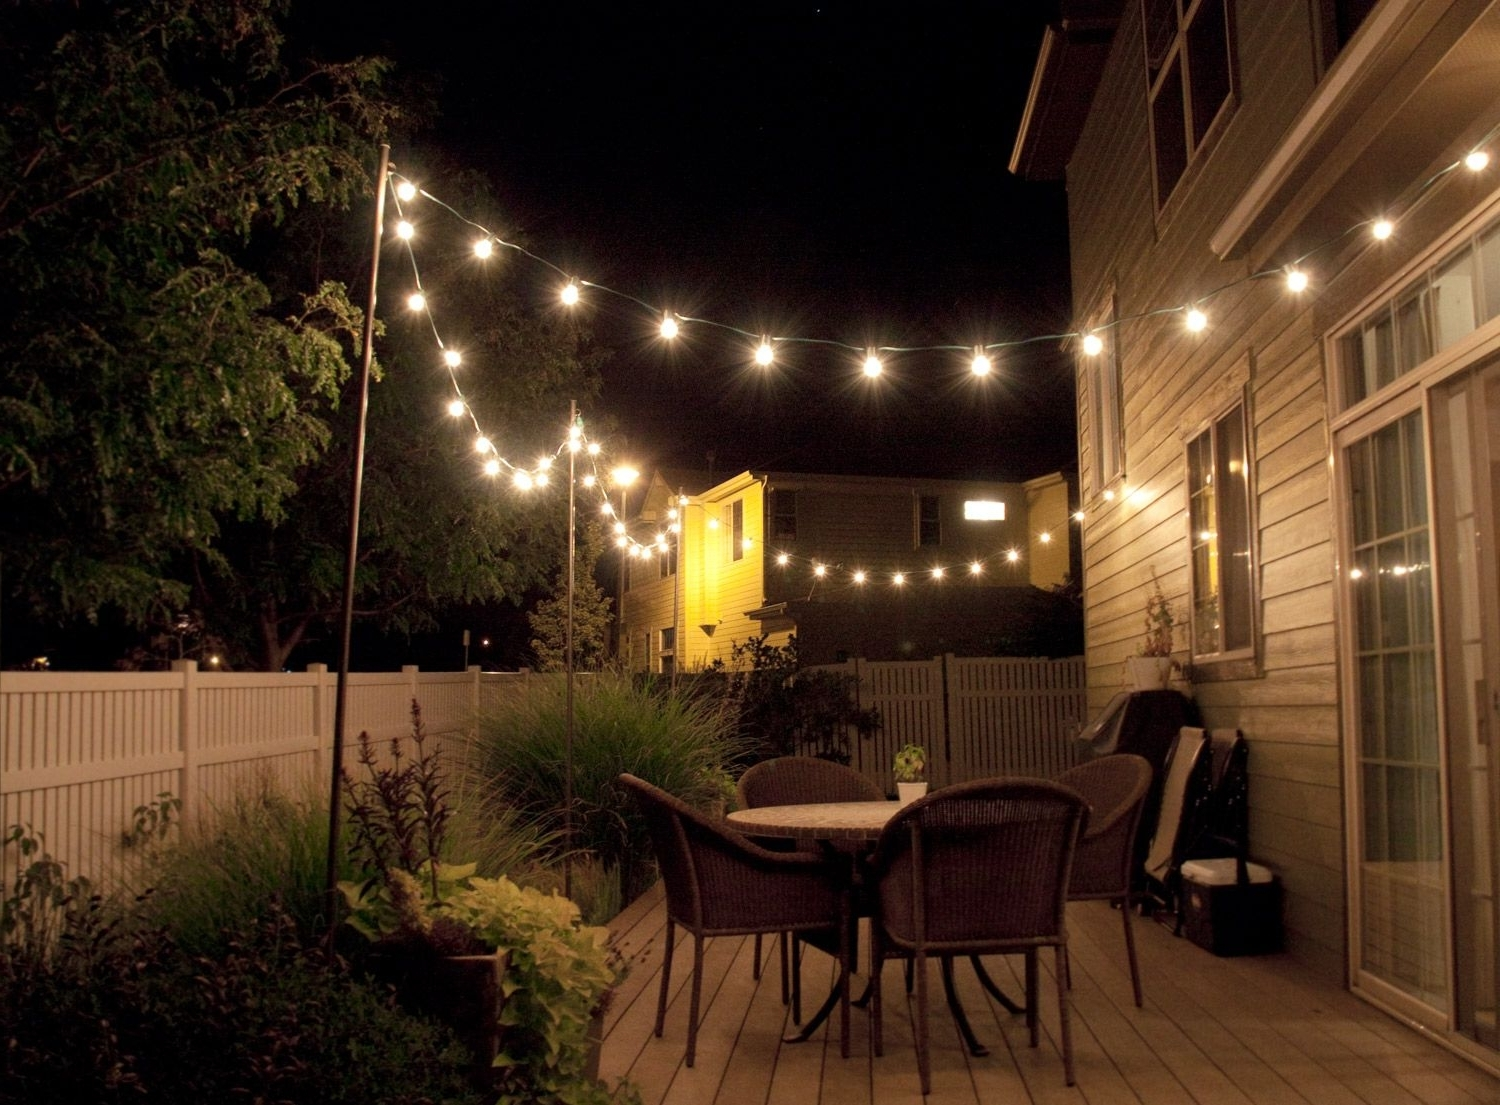 Latest How To Make Inexpensive Poles To Hang String Lights On – Café Style For Outdoor Hanging Lights On String (View 2 of 20)